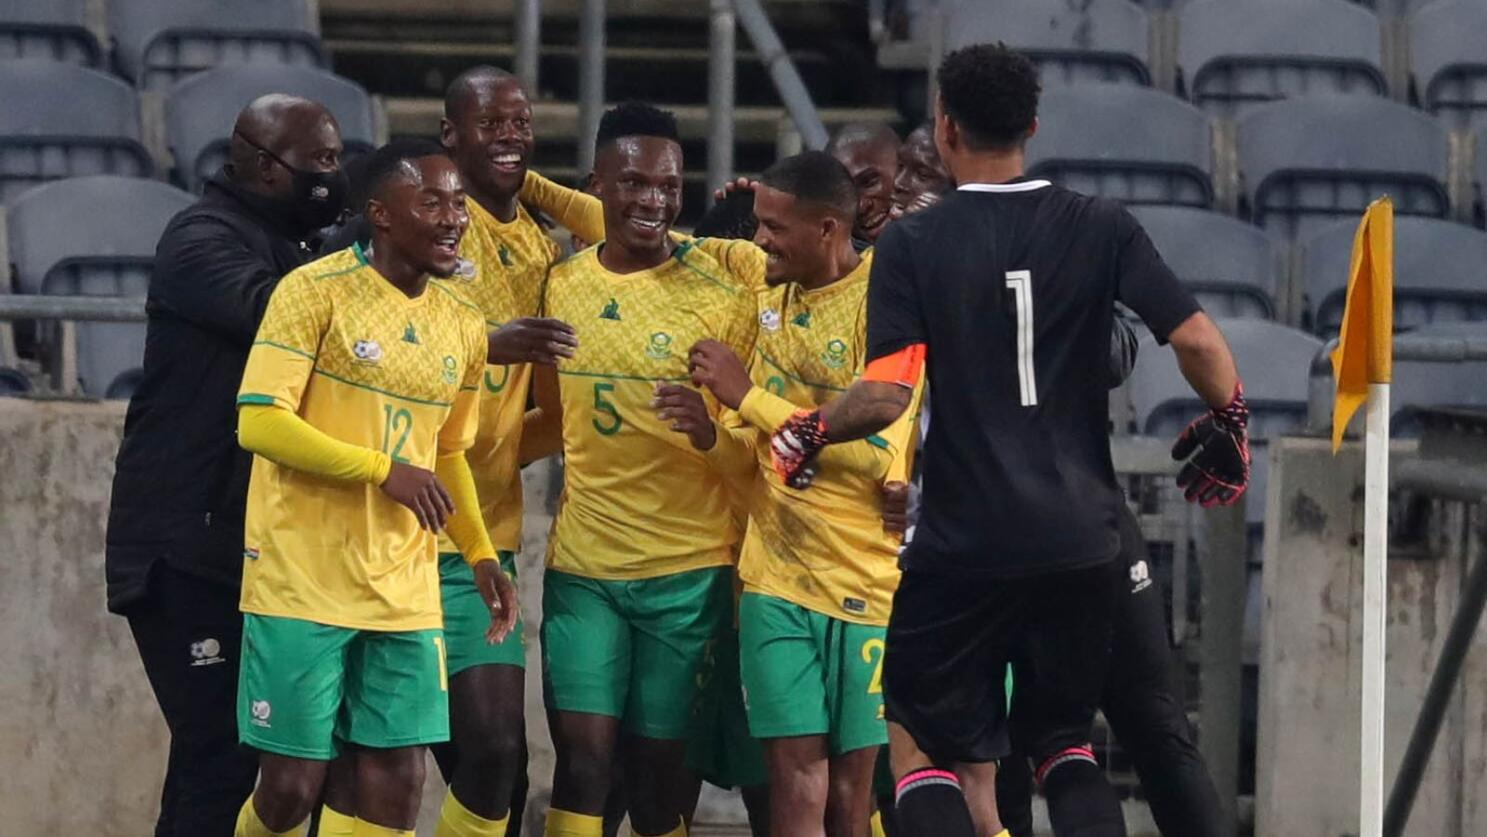 South Africa's Evidence Makgopa celebrates with teammates after scoring one of his two goals during their international friendly match against Uganda at Orlando Stadium in Johannesburg on Thursday